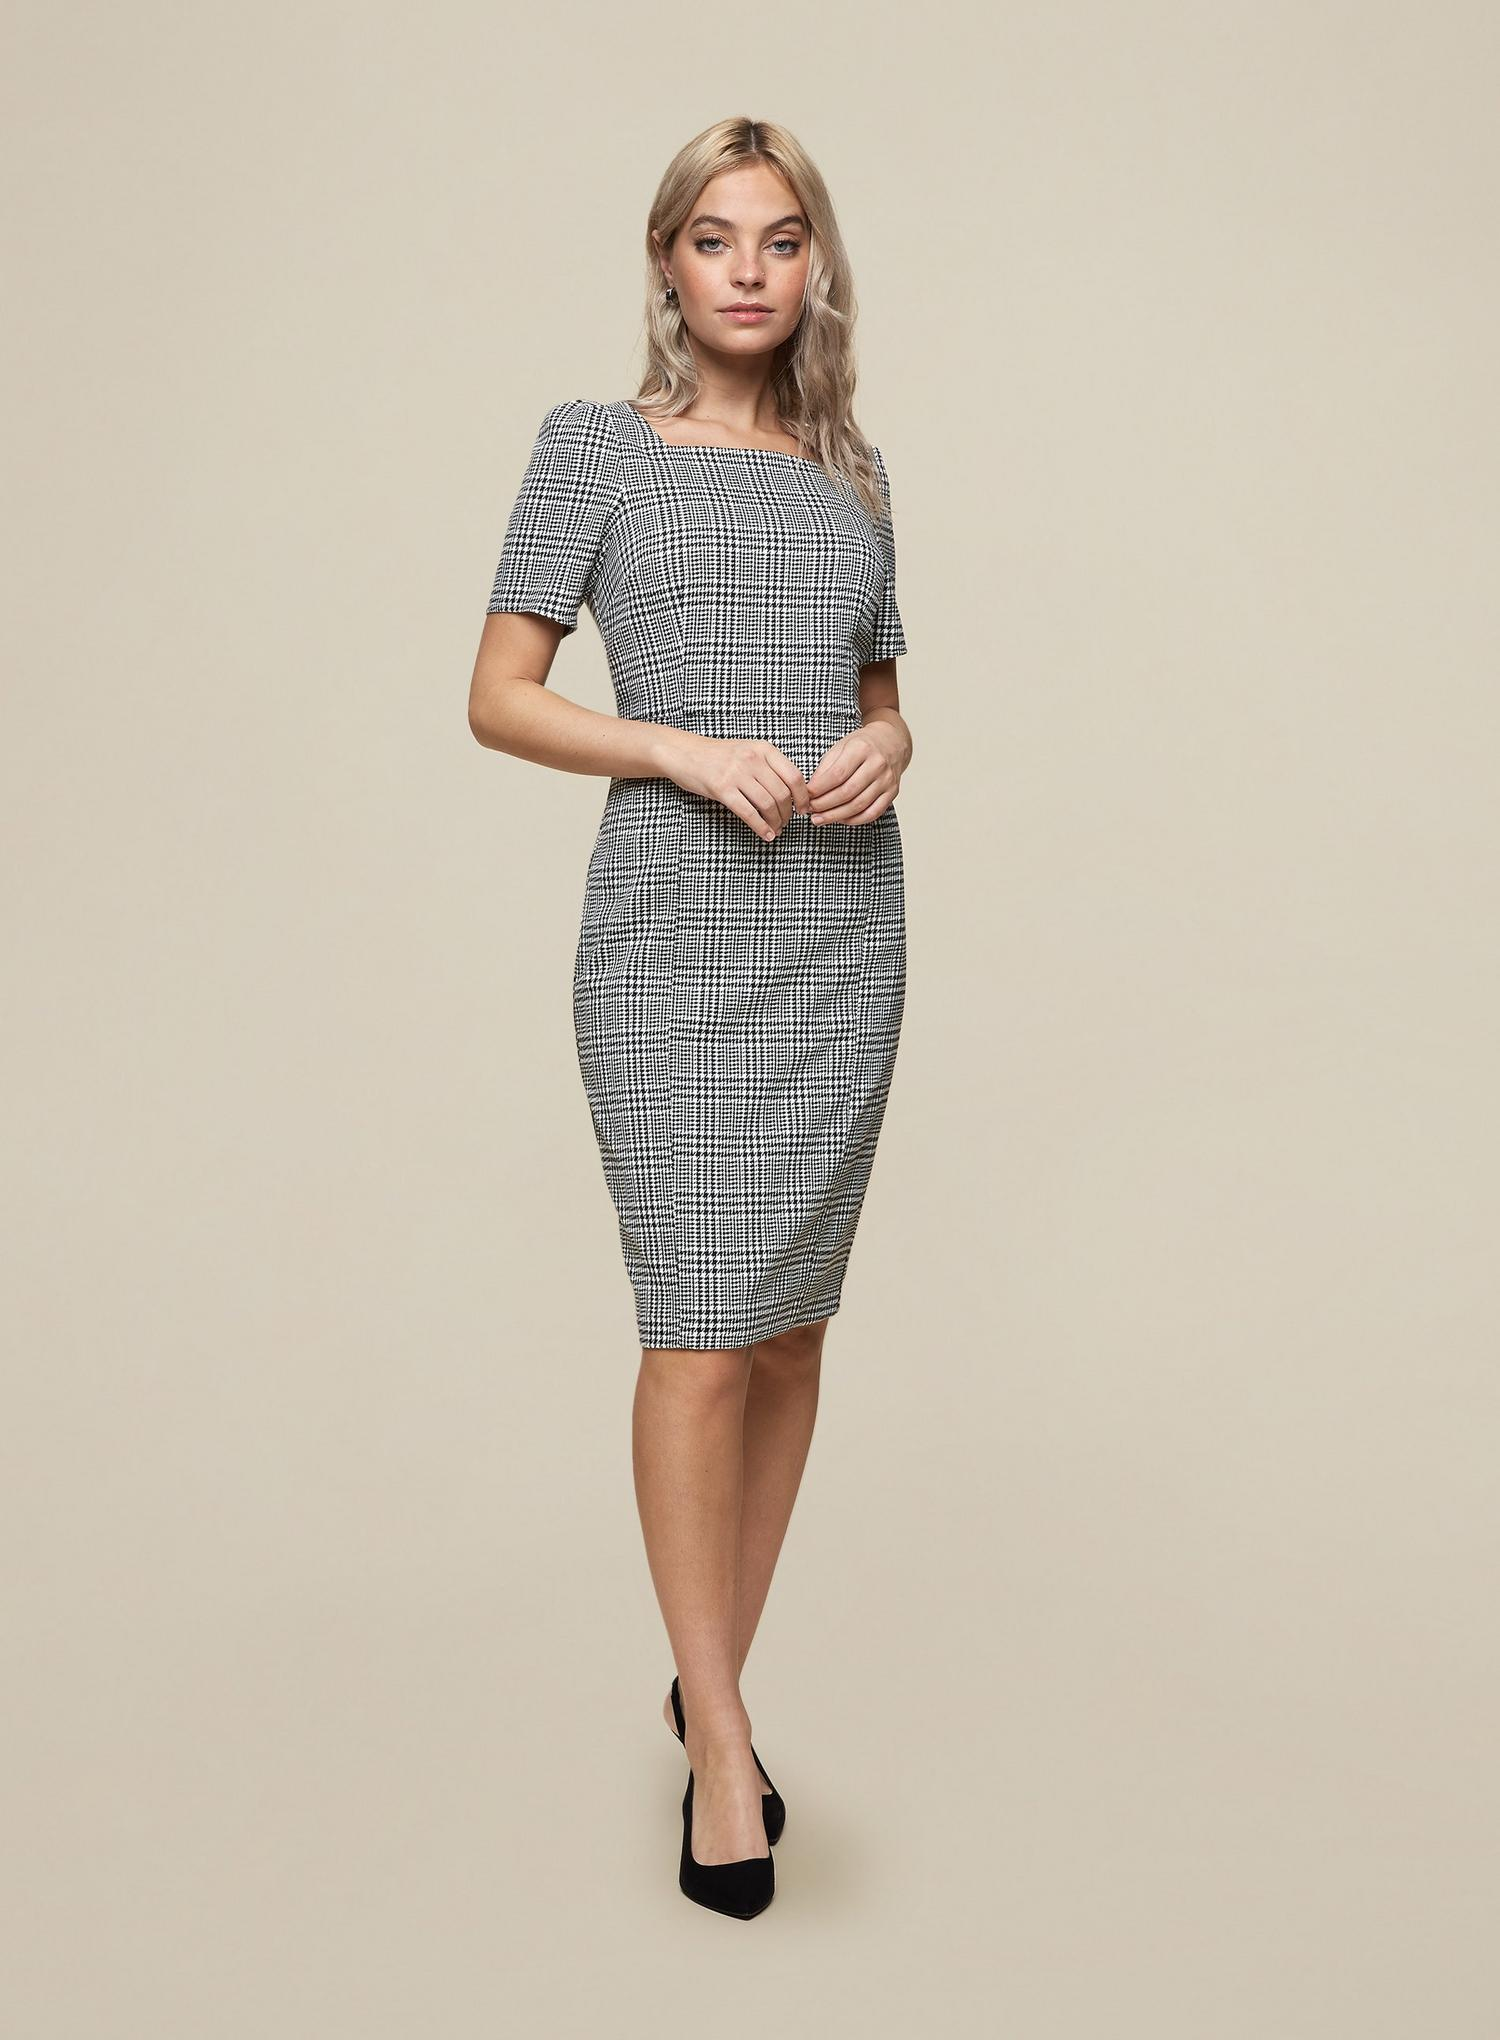 105 Petite Black Check Print Square Neck Dress image number 1